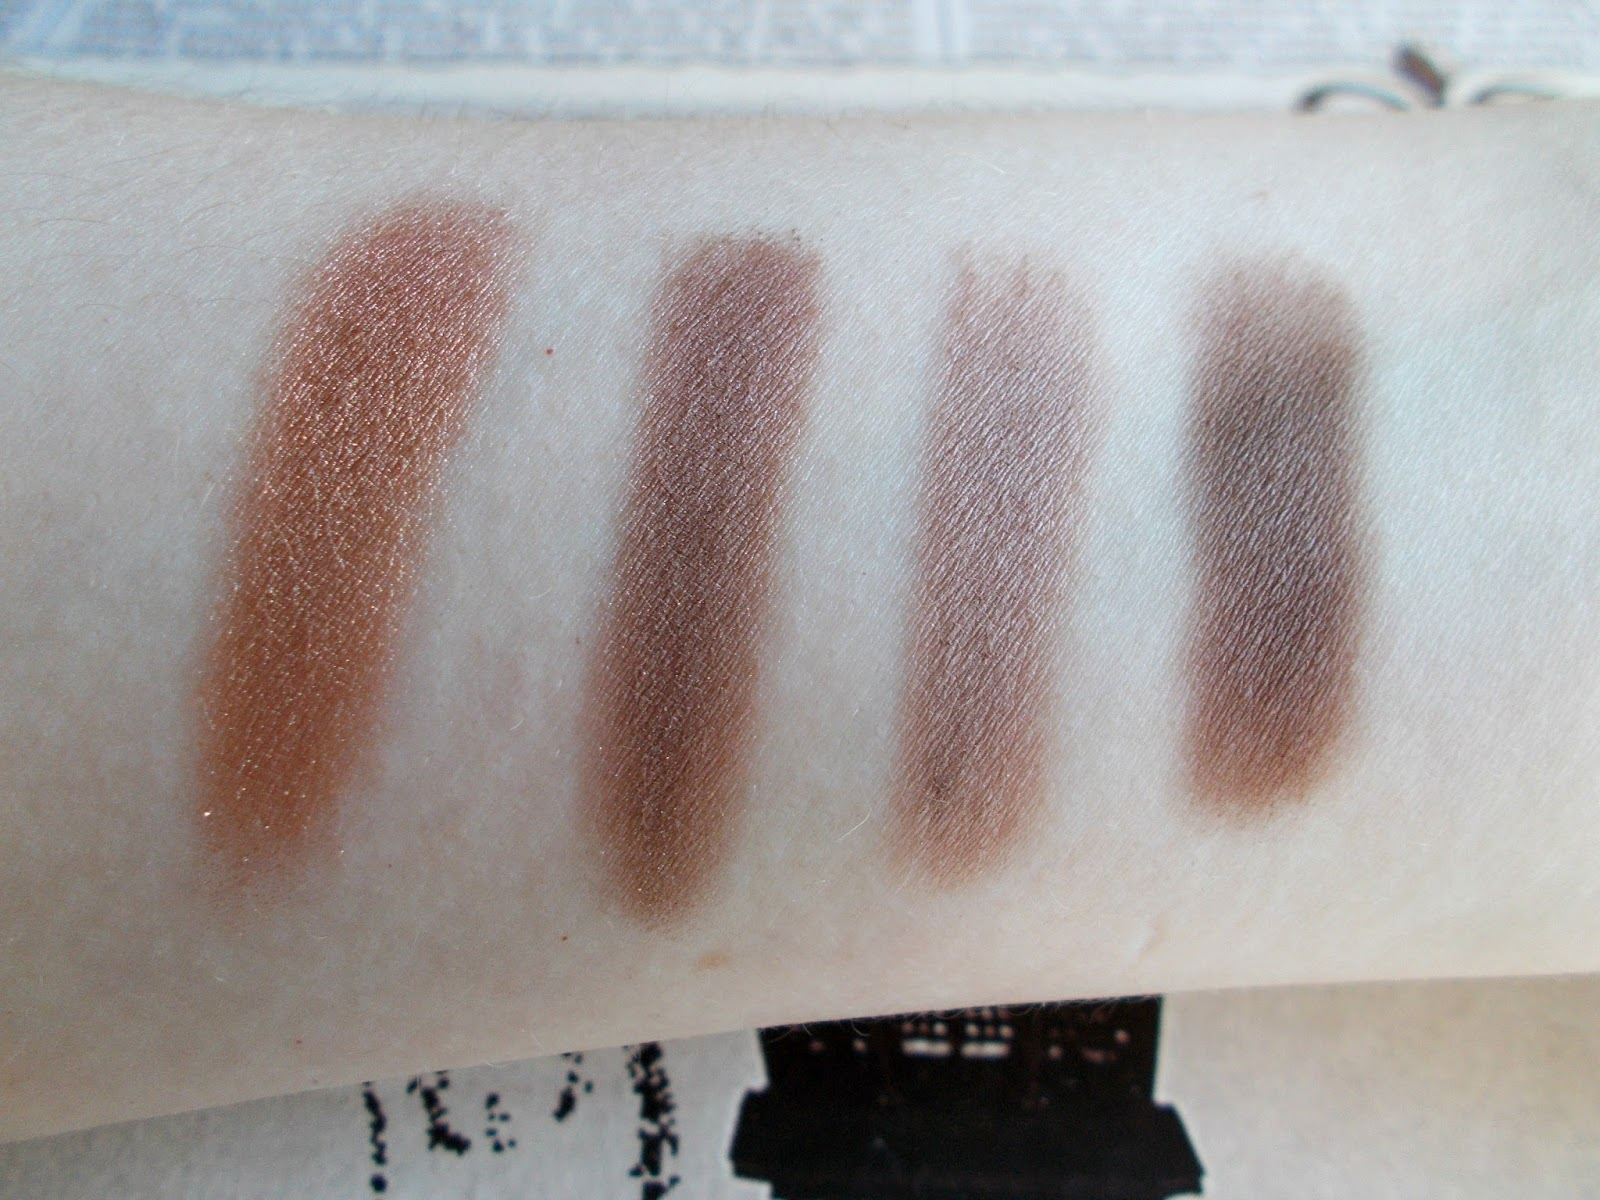 makeup geek eyeshadow swatches homecoming taupe notch barcelona beach mocha pans browns neurtrals